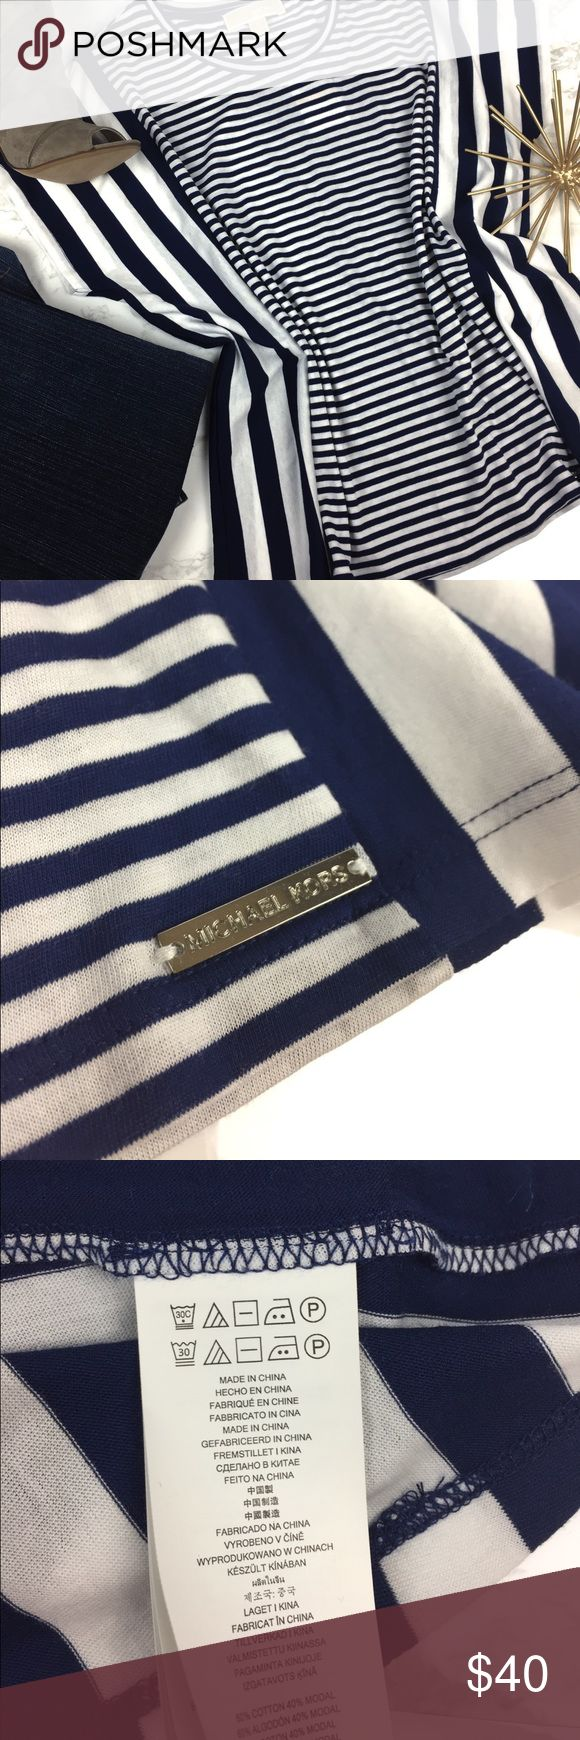 Michael Kors Tee Blue and white alternate stripes top by Michael Kors. Shirt is meant to be oversized and slouchy. Great basics top. NWT. 🌷 MICHAEL Michael Kors Tops Tees - Short Sleeve